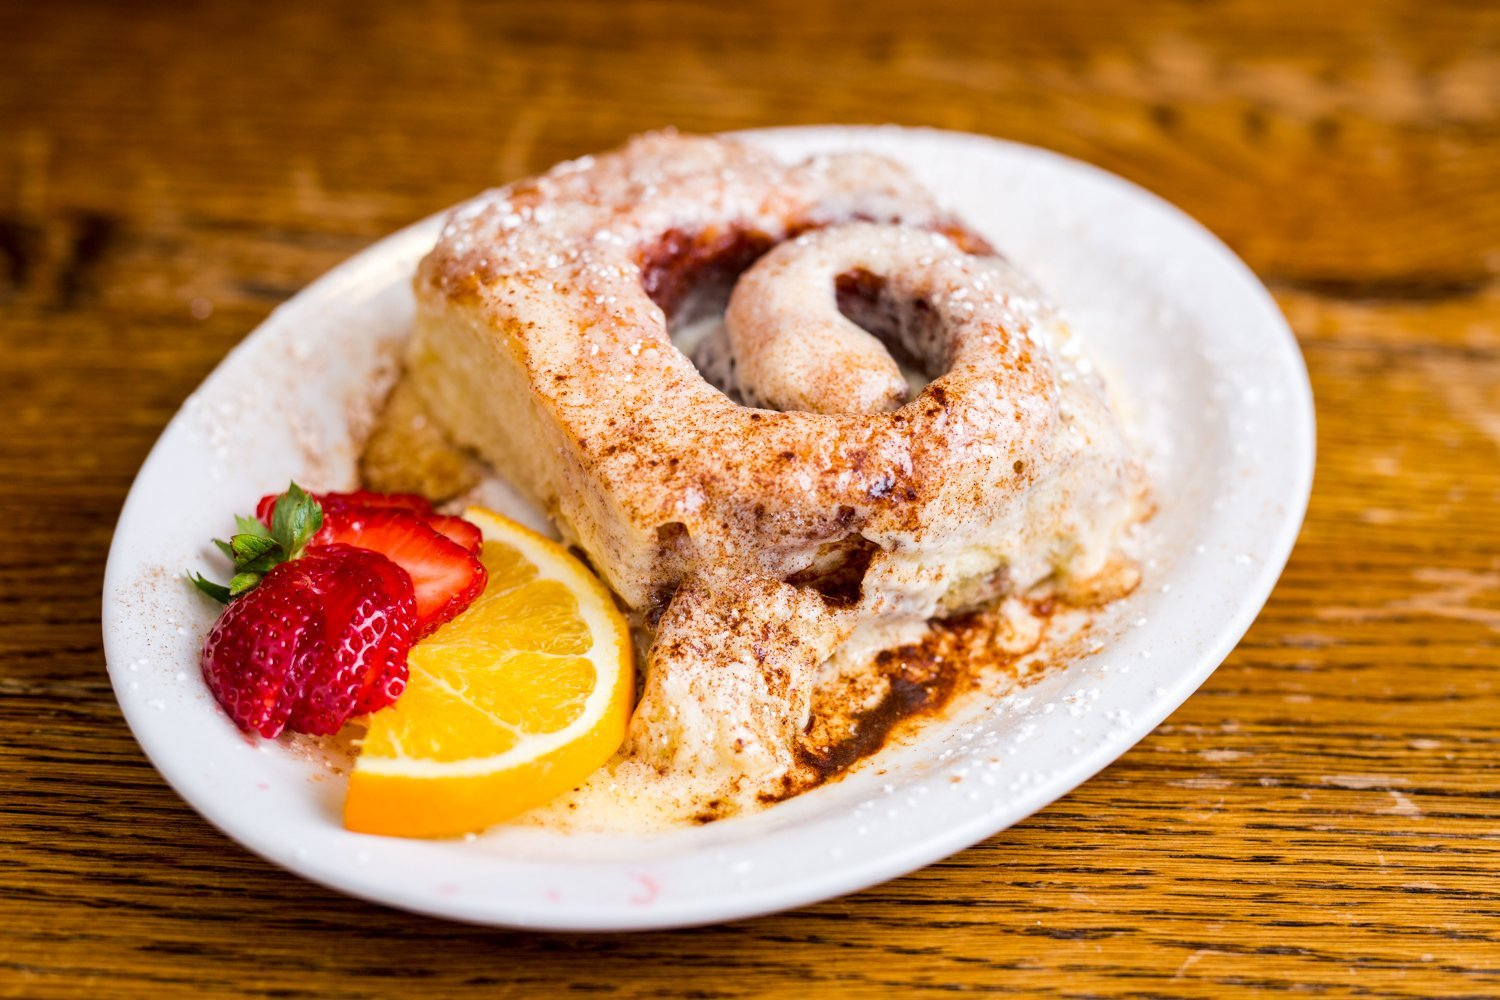 Cinnamon Roll from Donner Lake Kitchen